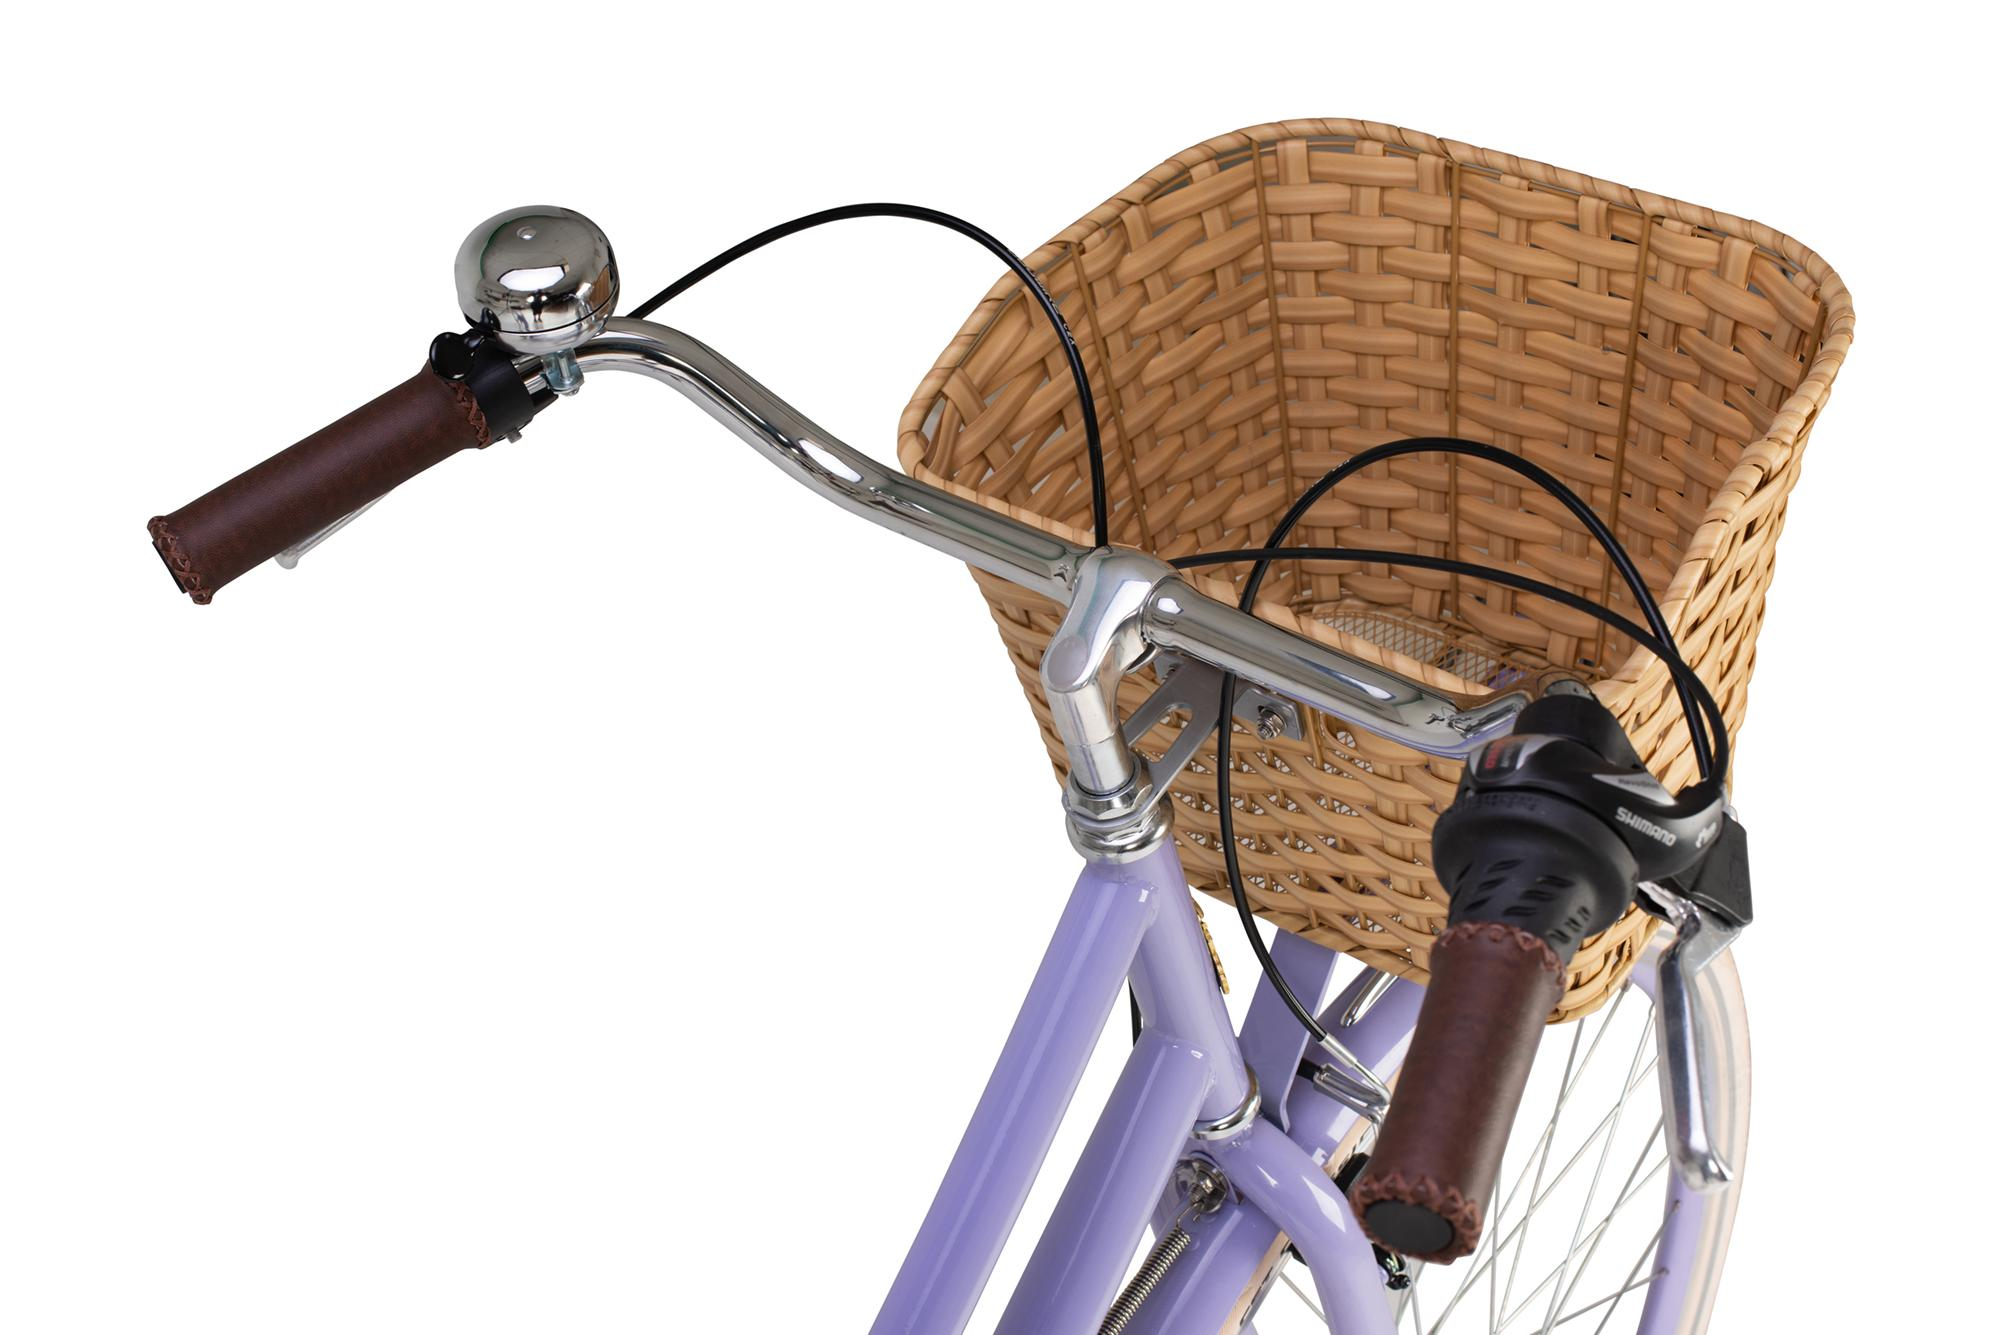 Handlebars and basket on the Raleigh Sherwood classic ladies bike in lilac